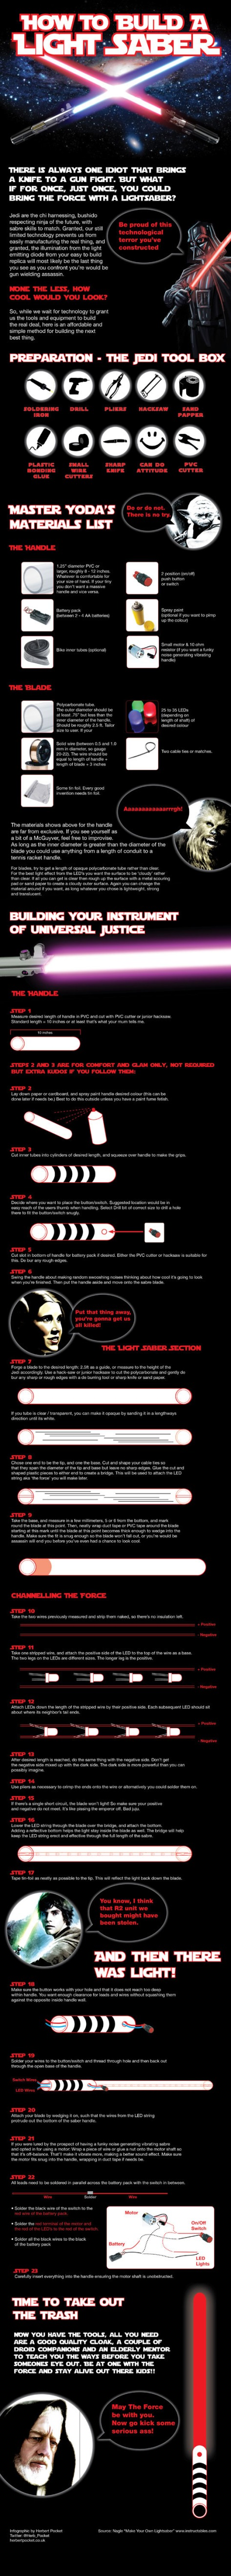 how to make a lightsaber